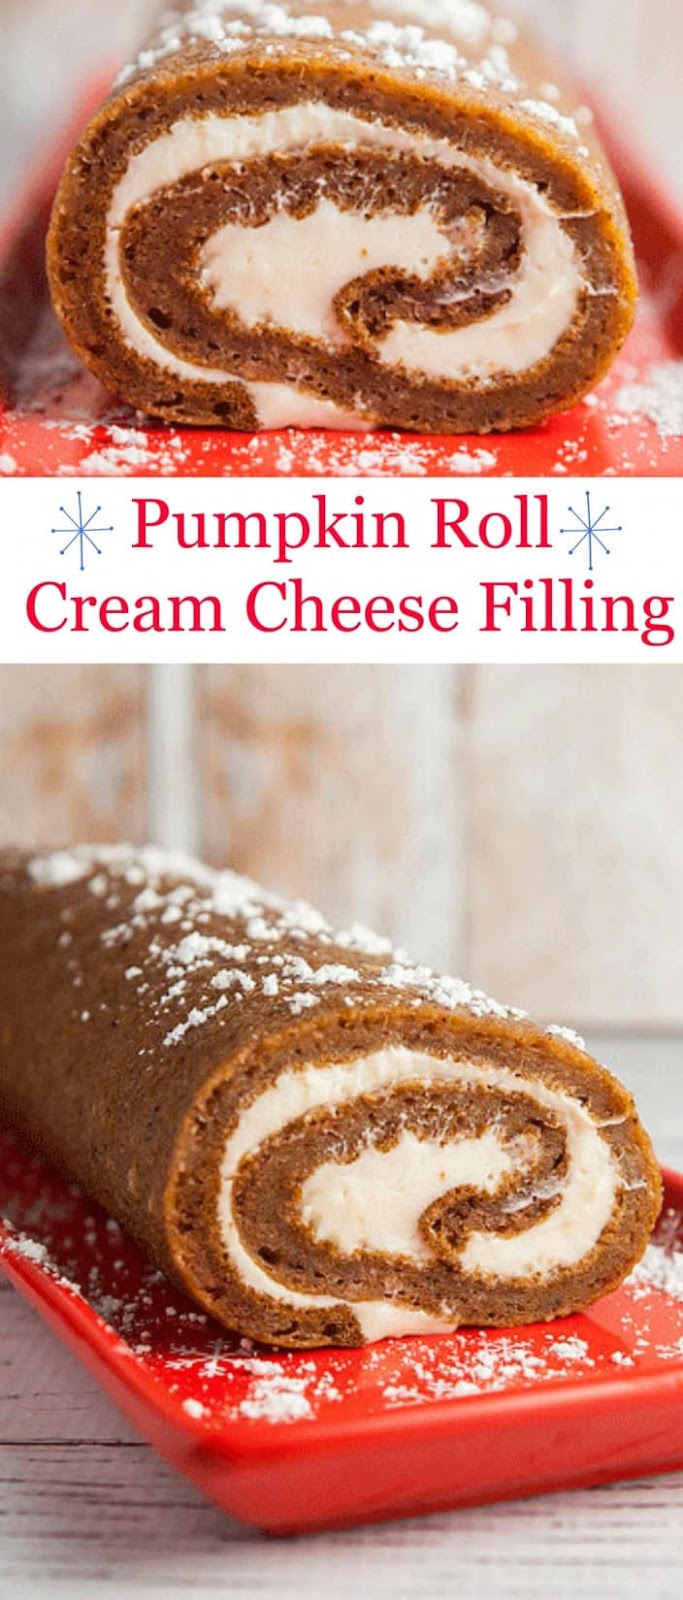 HOW TO make the BEST Pumpkin Roll With Cream Cheese Filling- my most requested Thanksgiving dessert!